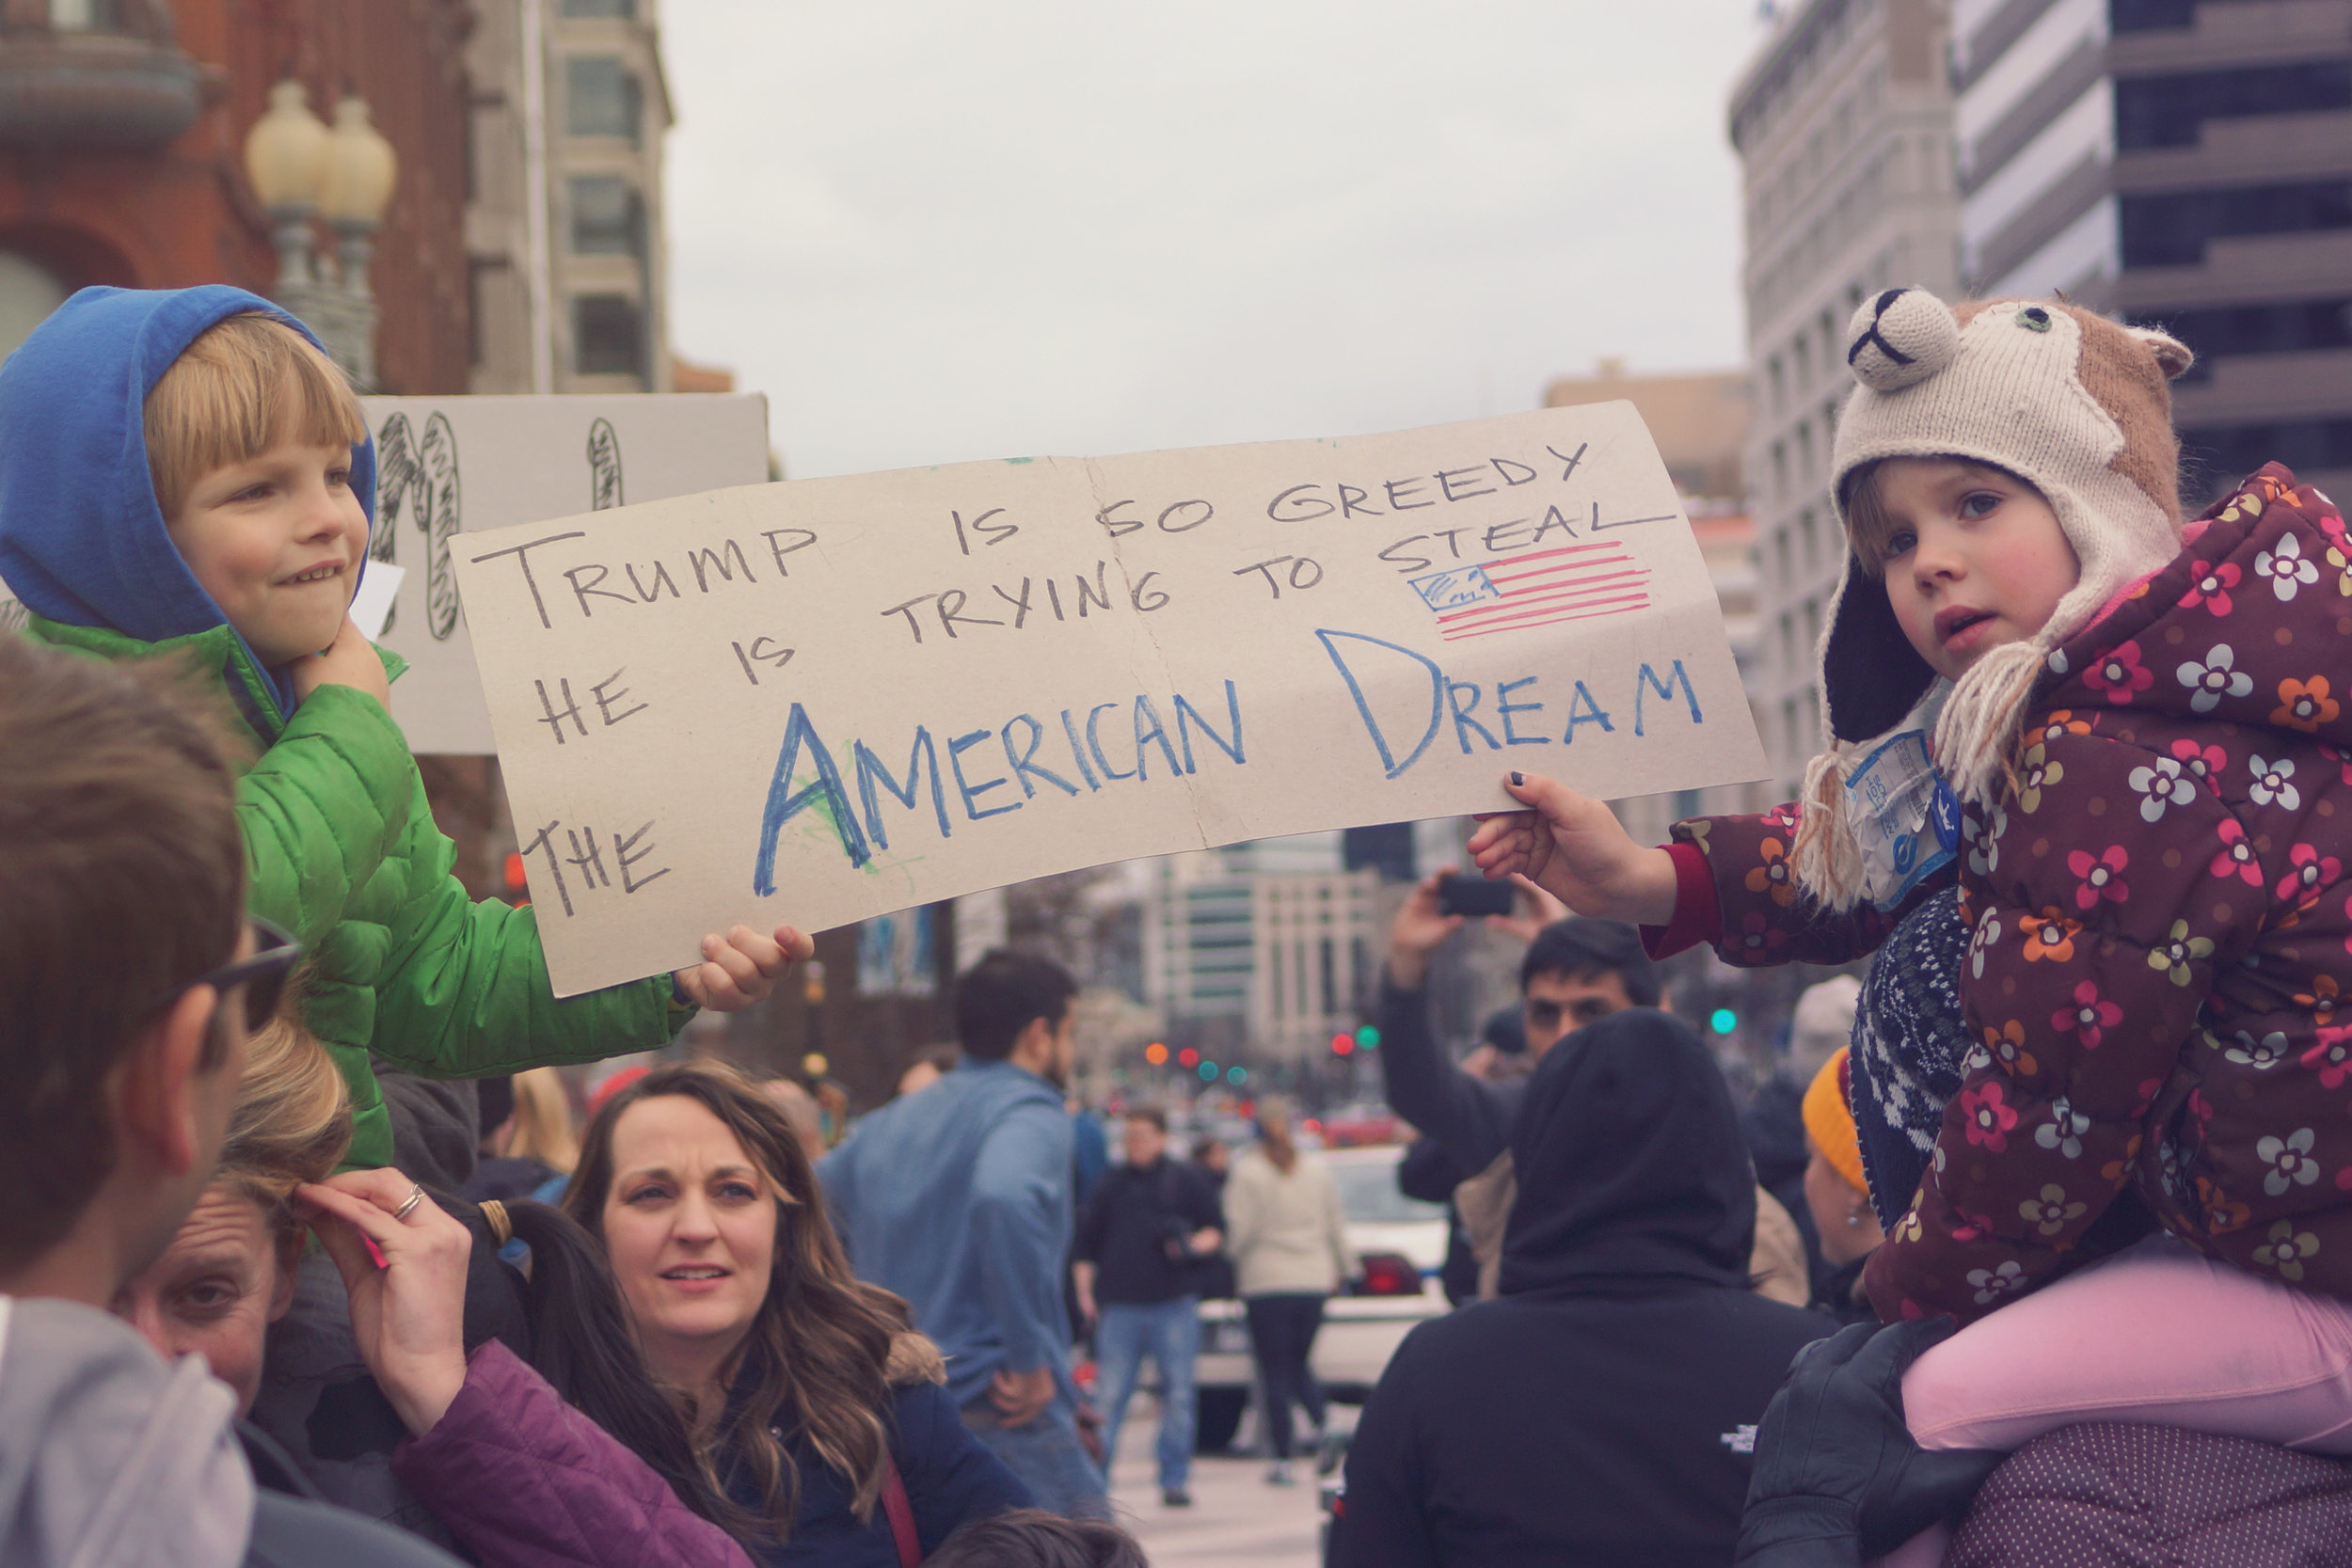 [Image Description: At either end of the photo a white child sits on the shoulders of an adult, one is wearing a bear hat and floral puffer jacket, the other a hoodie and giving a toothy grin.They hold a sign between them in the air that reads 'Trump is so greedy he is trying to steal the American dream.']